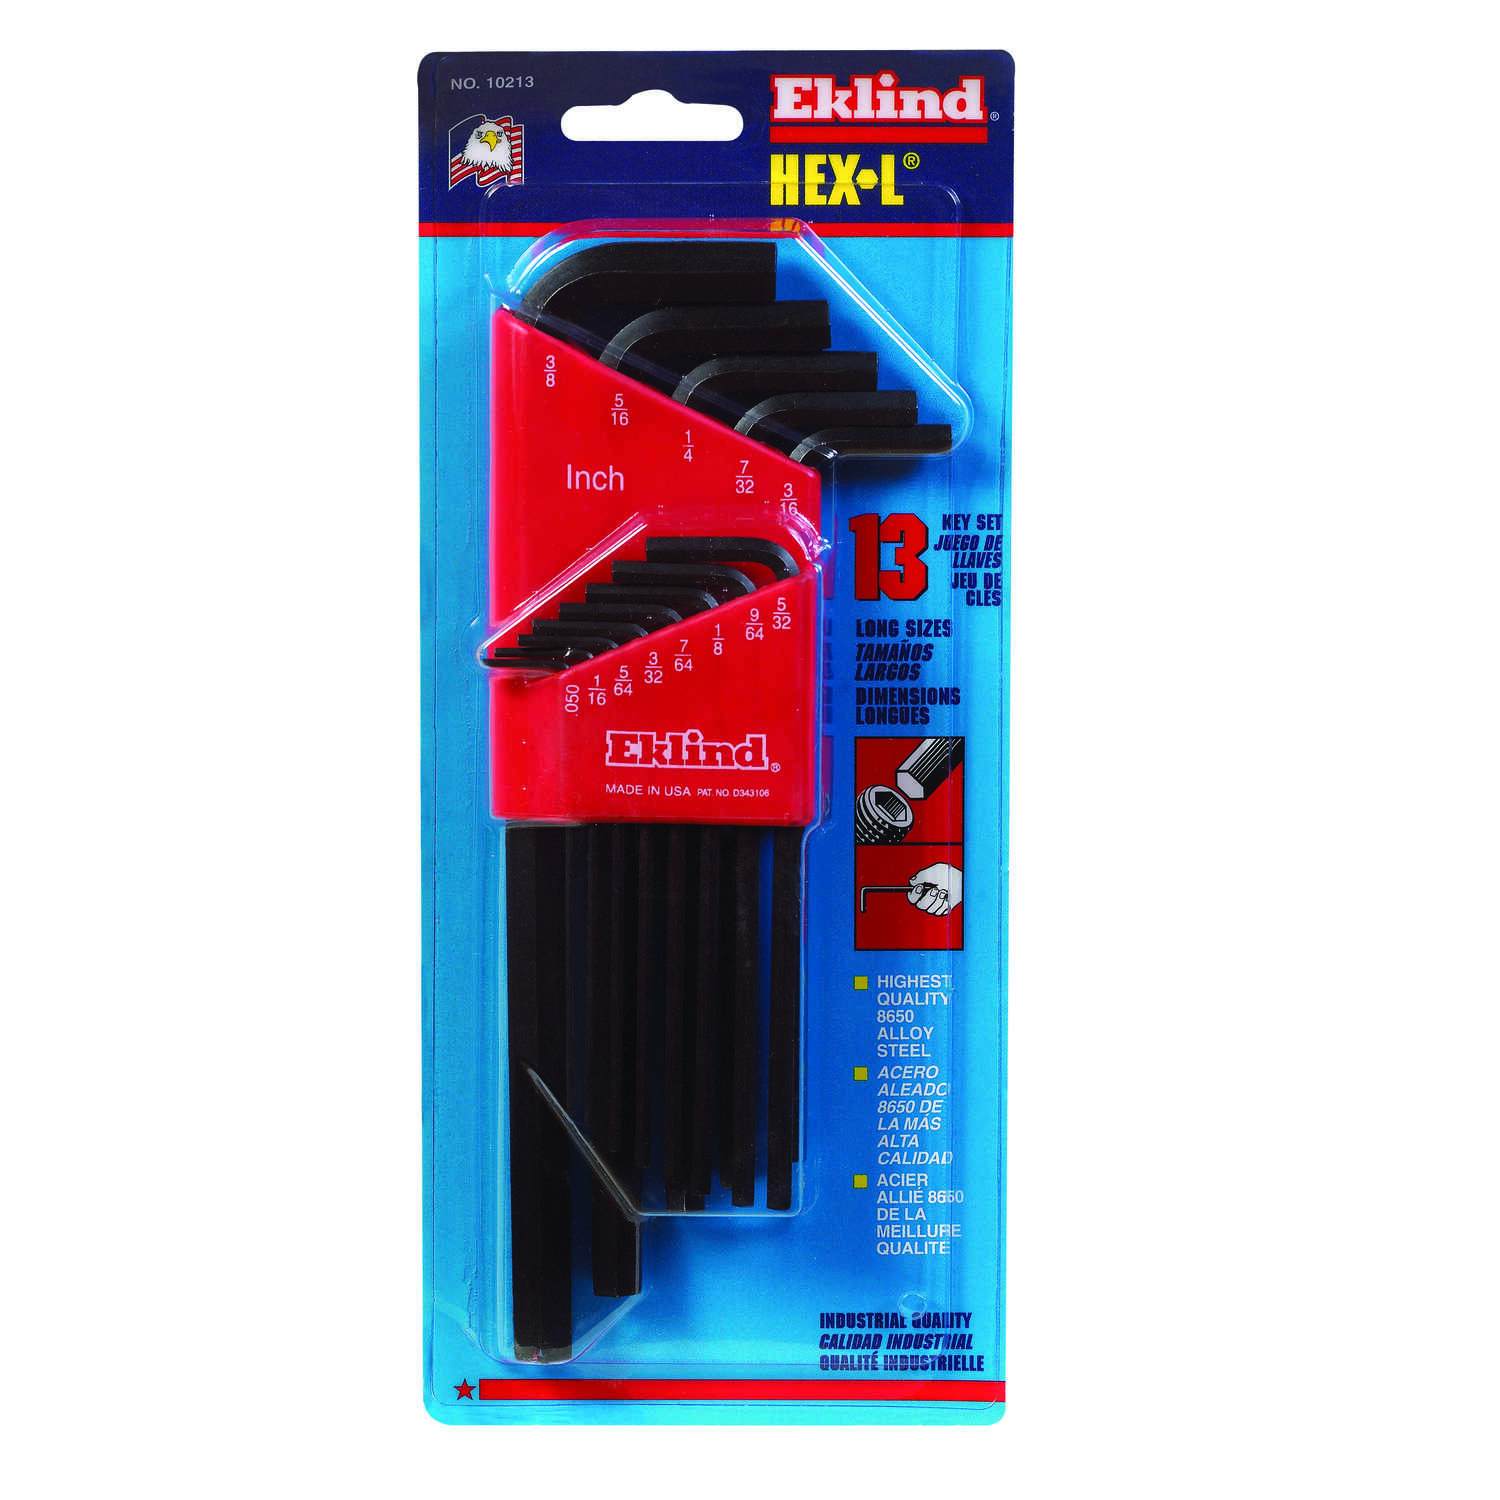 Eklind Tool  .050 to 3/8  SAE  Long Arm  Multi-Size in. 13 pc. Hex L-Key Set